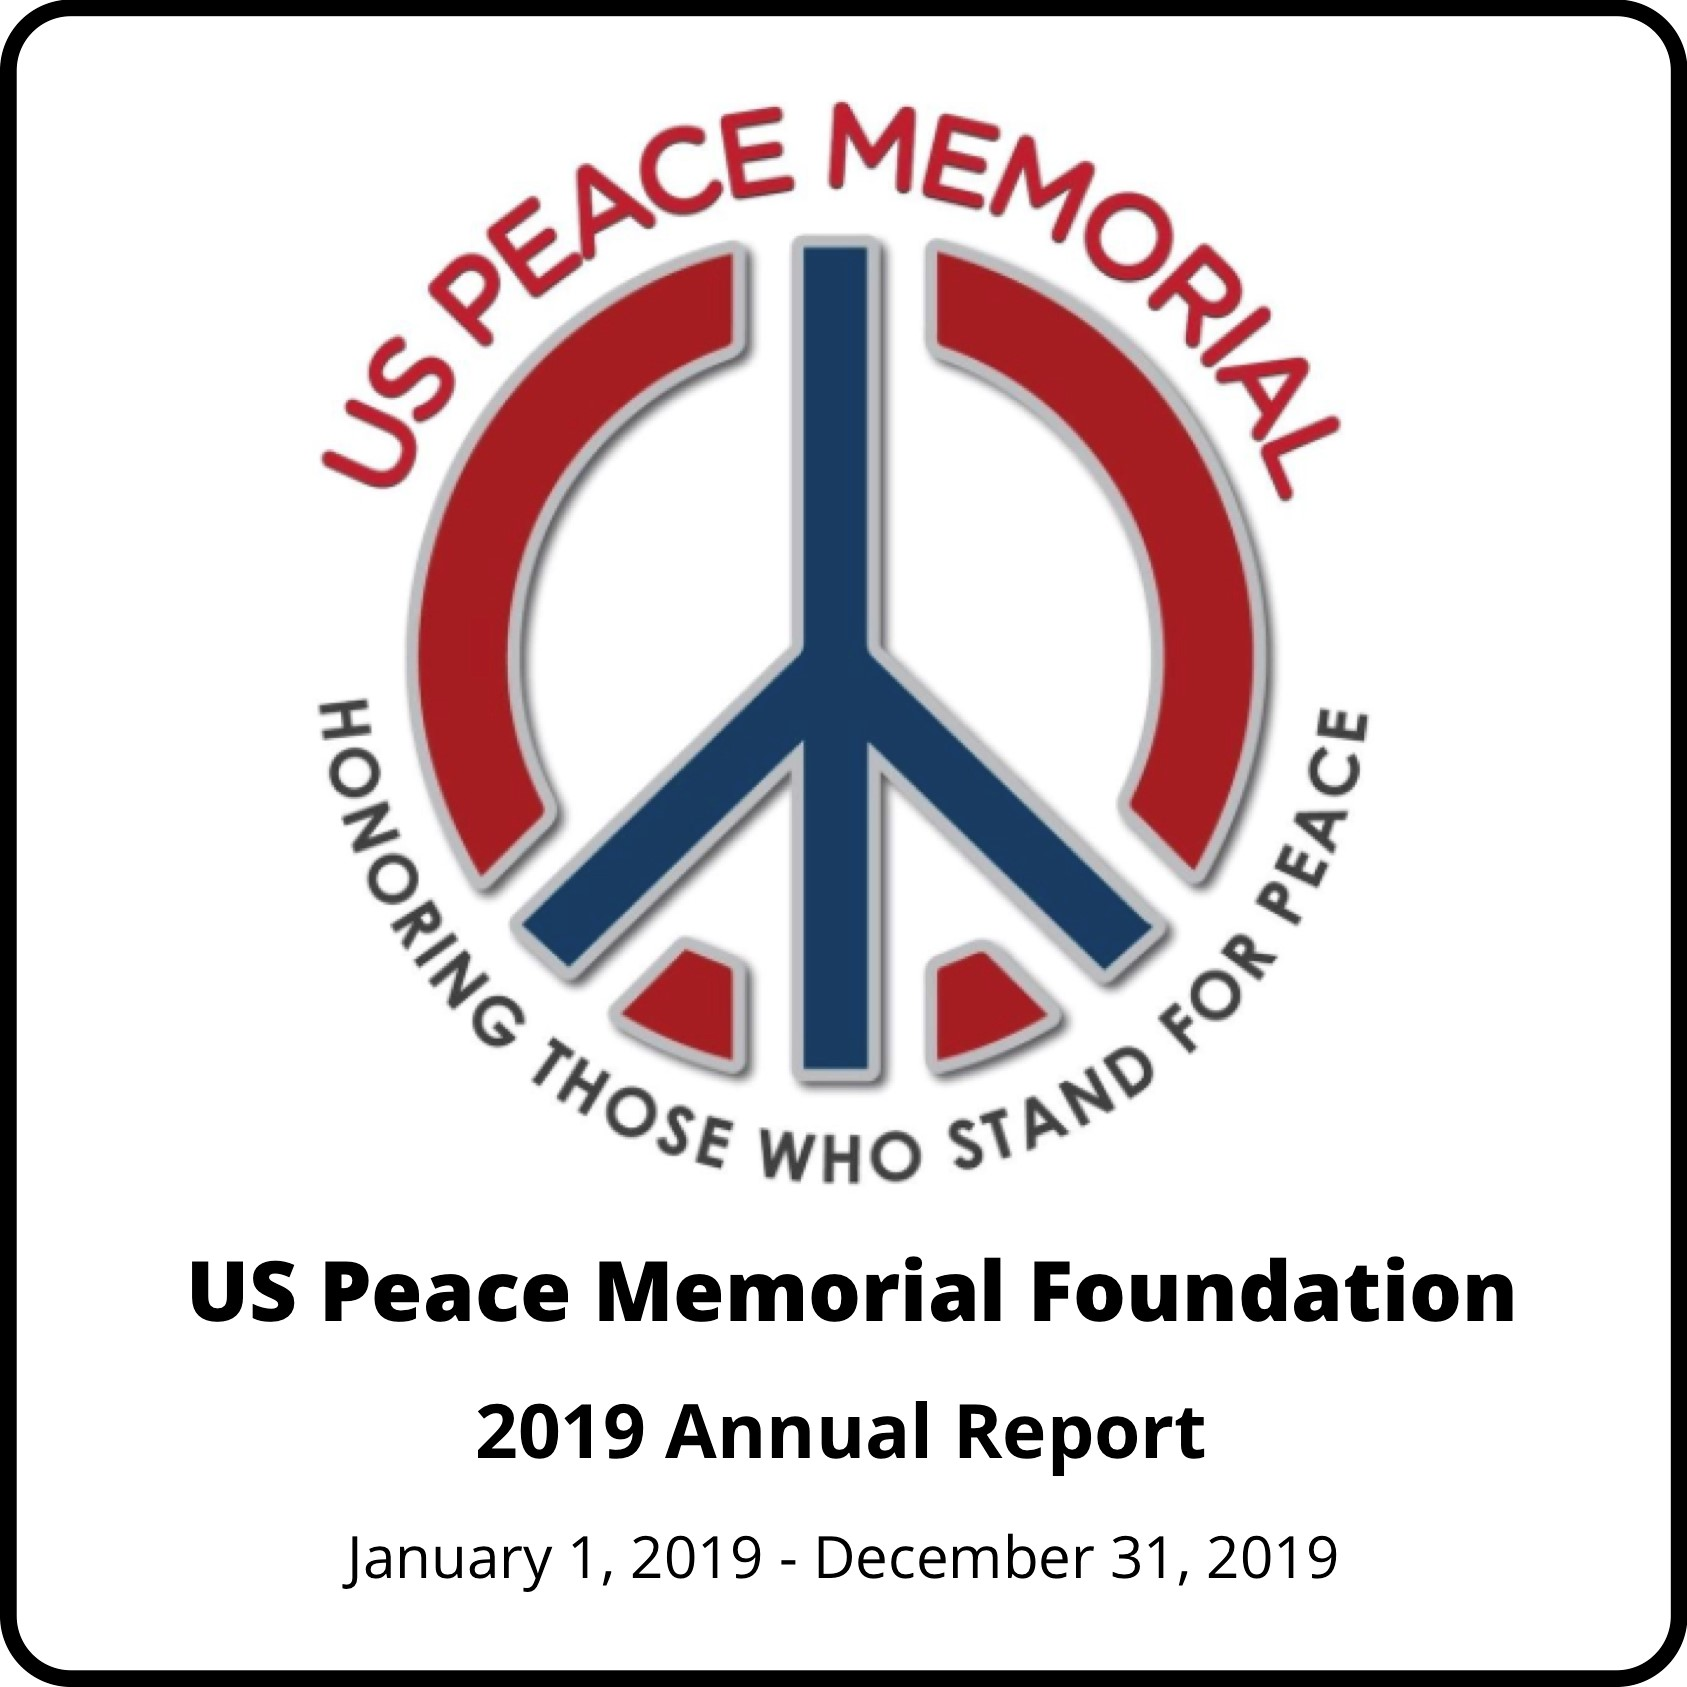 US Peace Memorial Foundation 2019 Annual Report